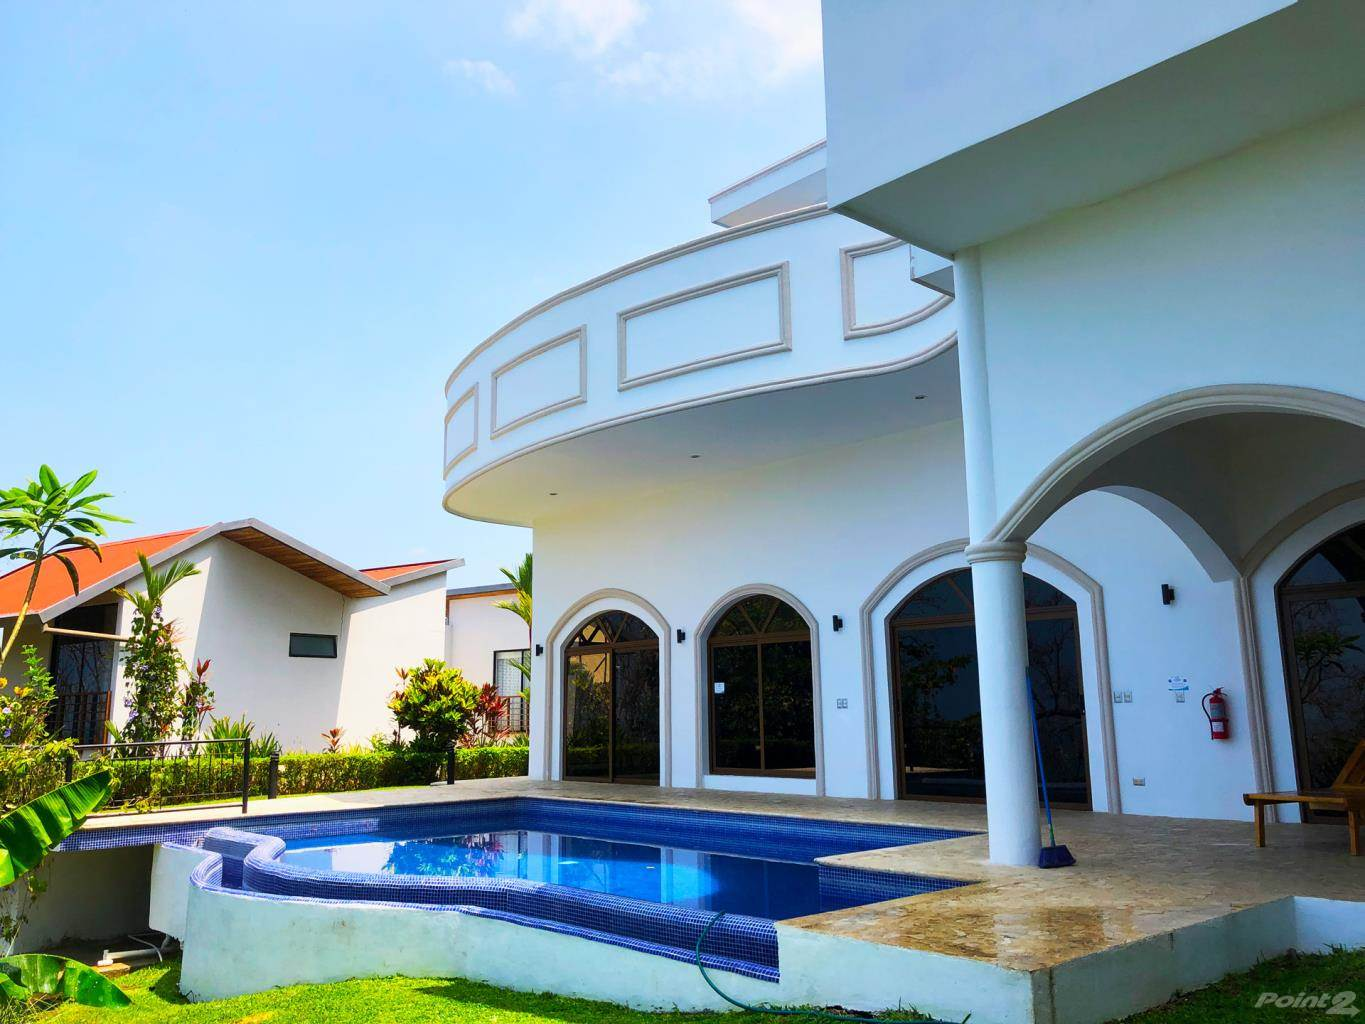 House for sale Punta Leona, Costa Rica Exclusive Luxury Vacation Mansion